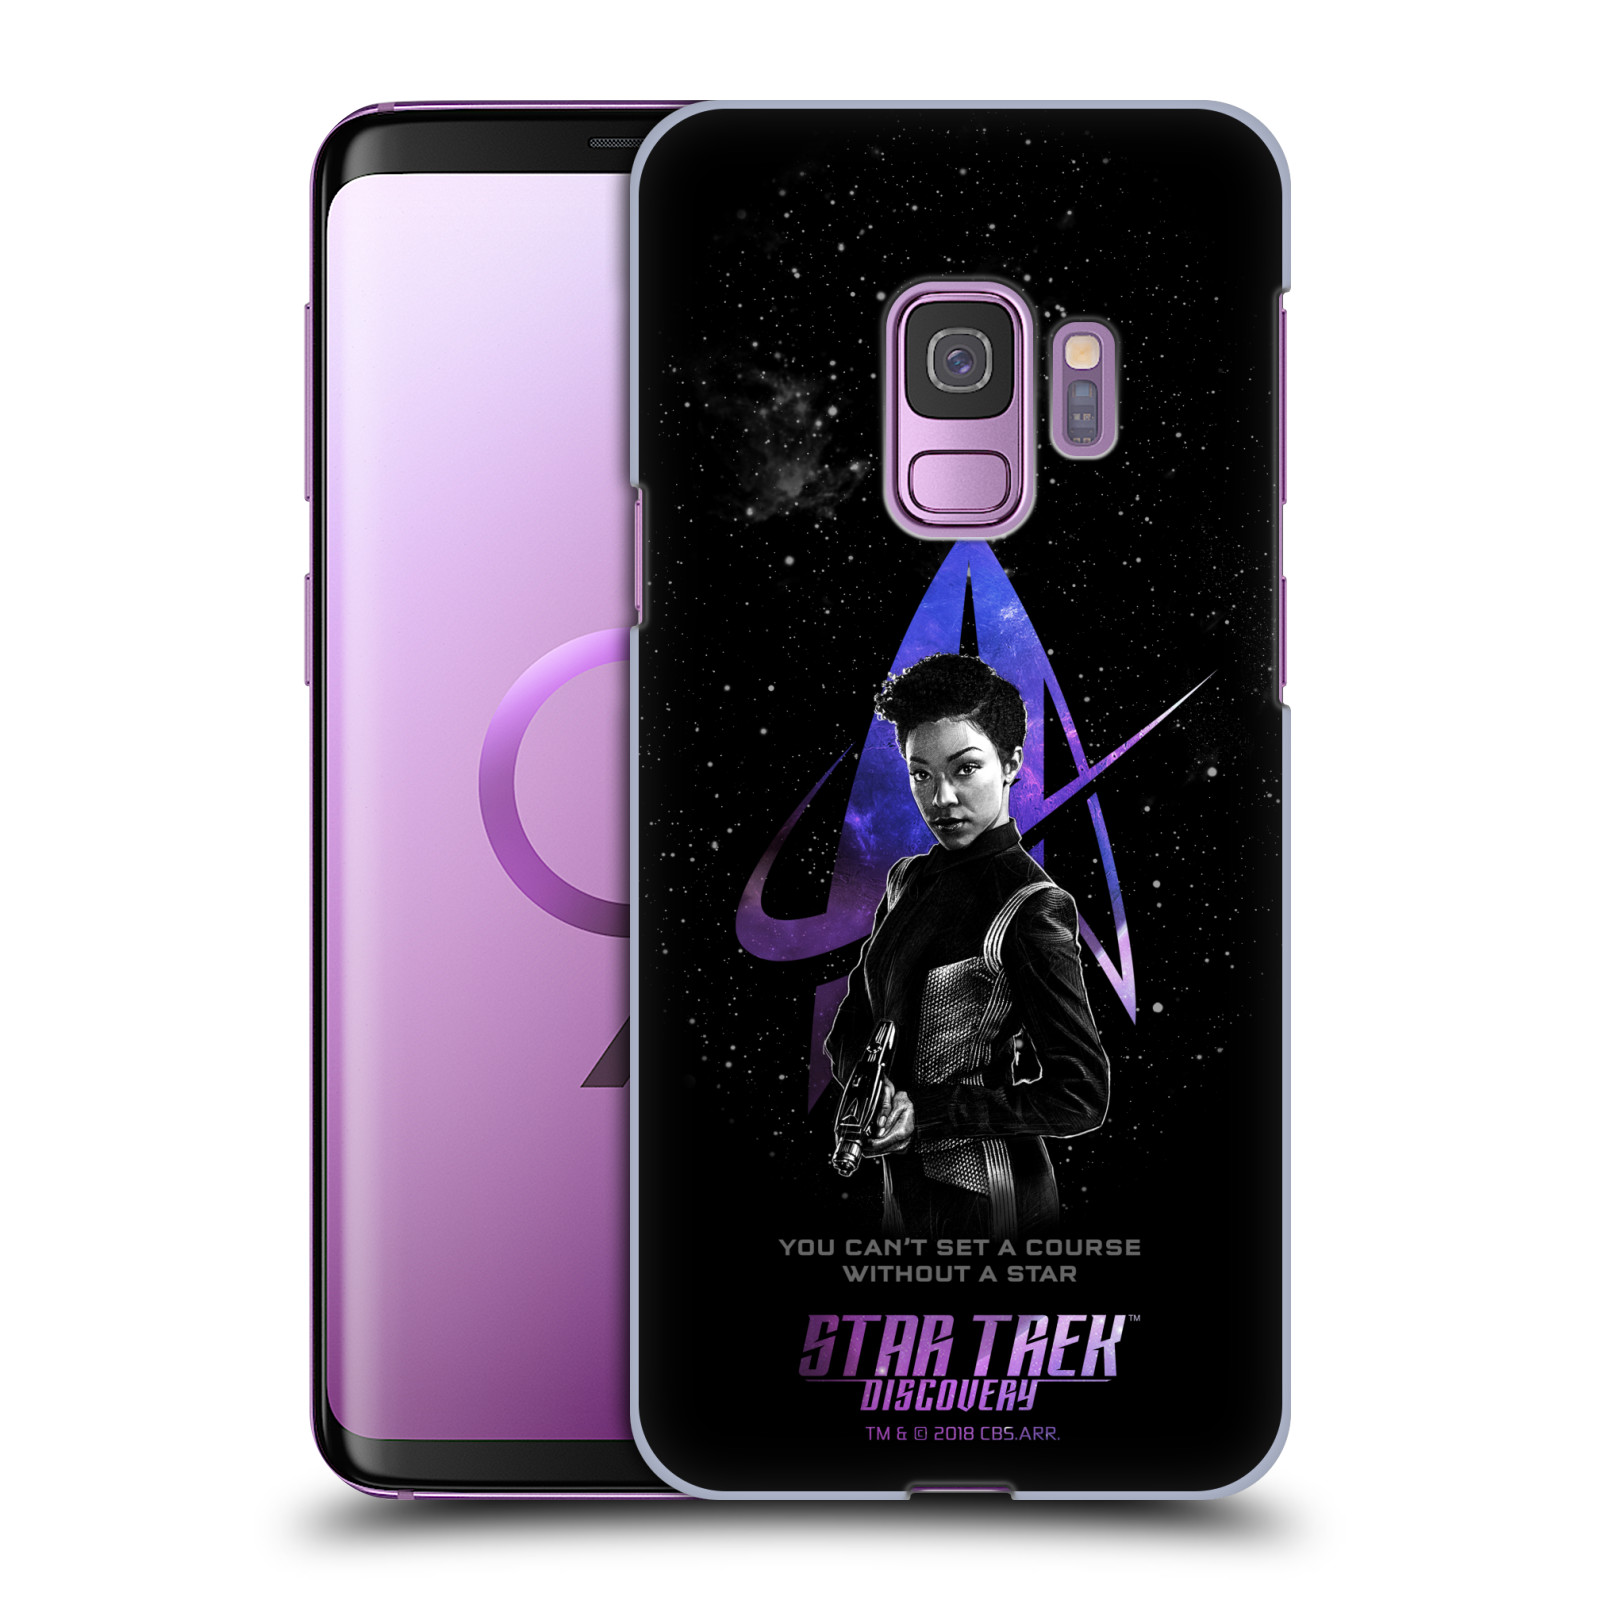 STAR-TREK-DISCOVERY-DISCOVERY-Nebula-caracteres-Coque-Arriere-Pour-SAMSUNG-Phone-1